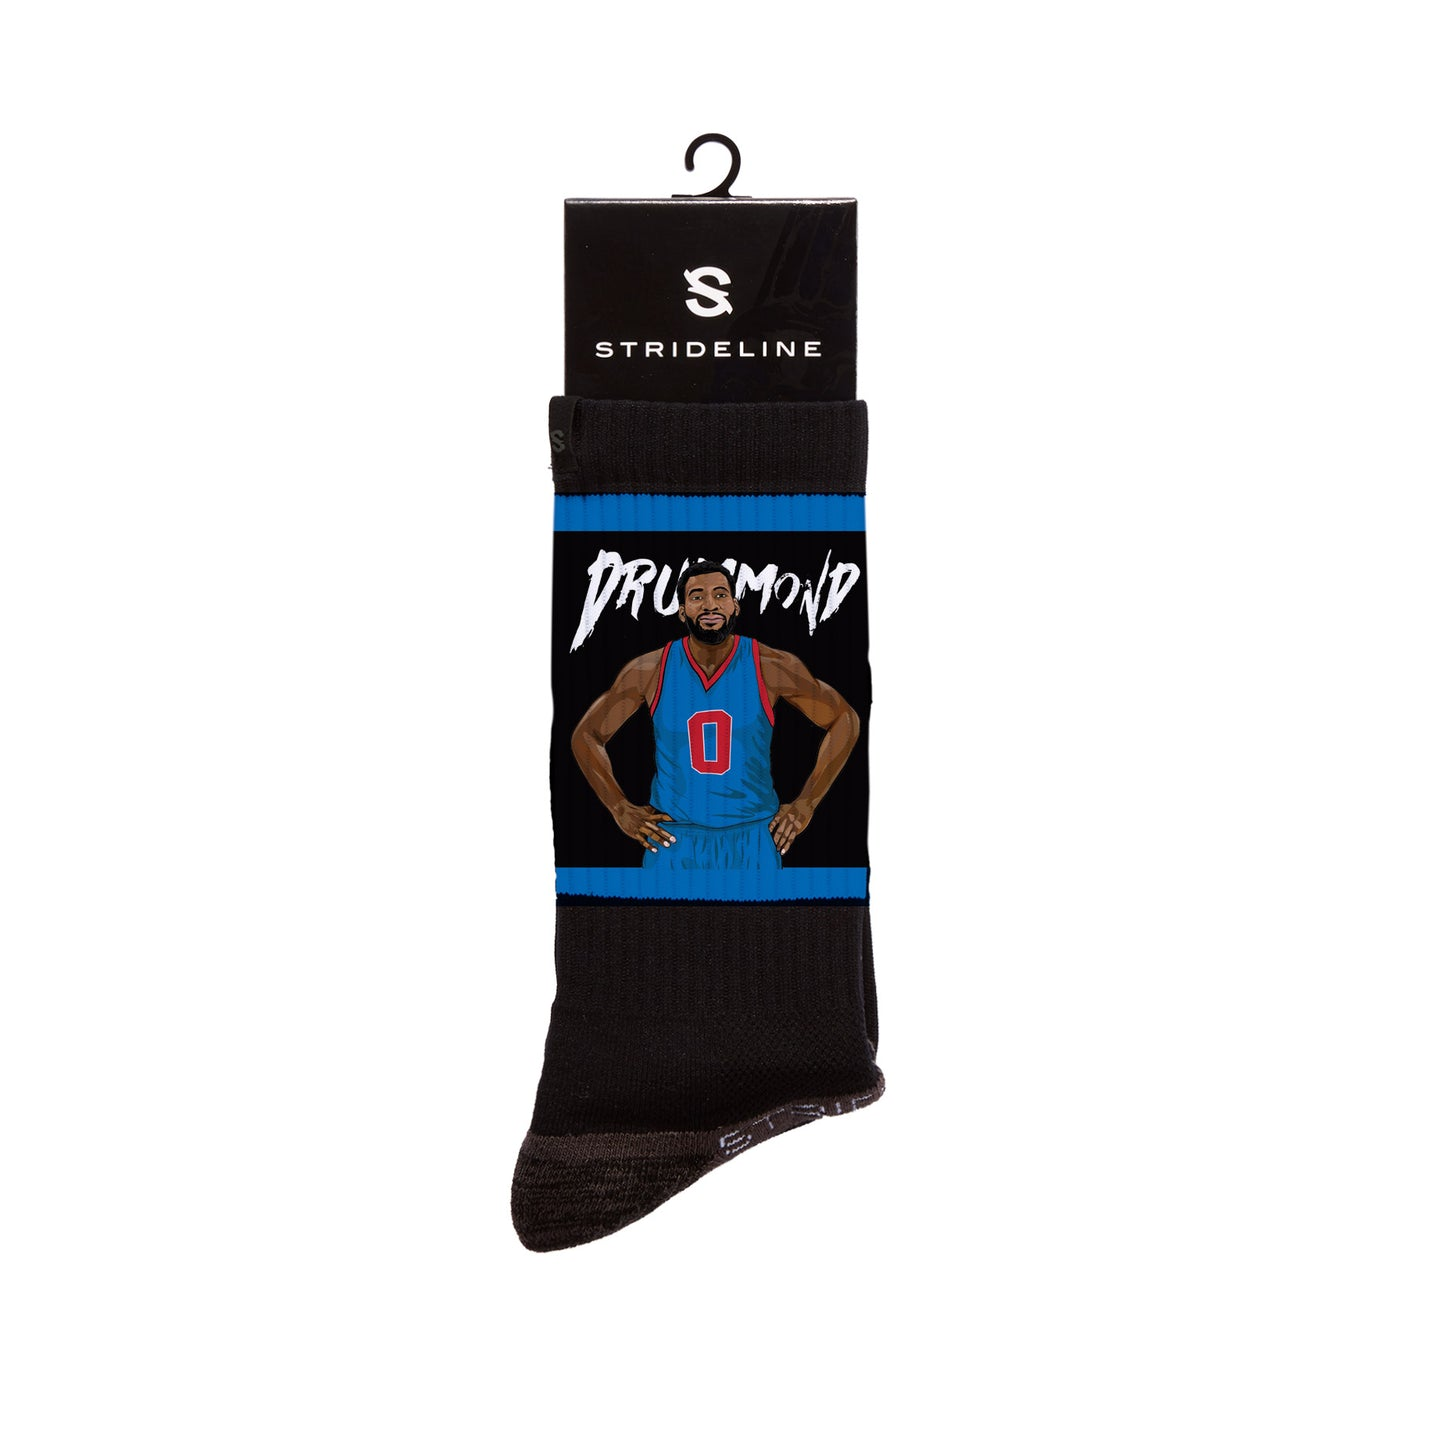 Andre Drummond Double Double Black Crew Socks